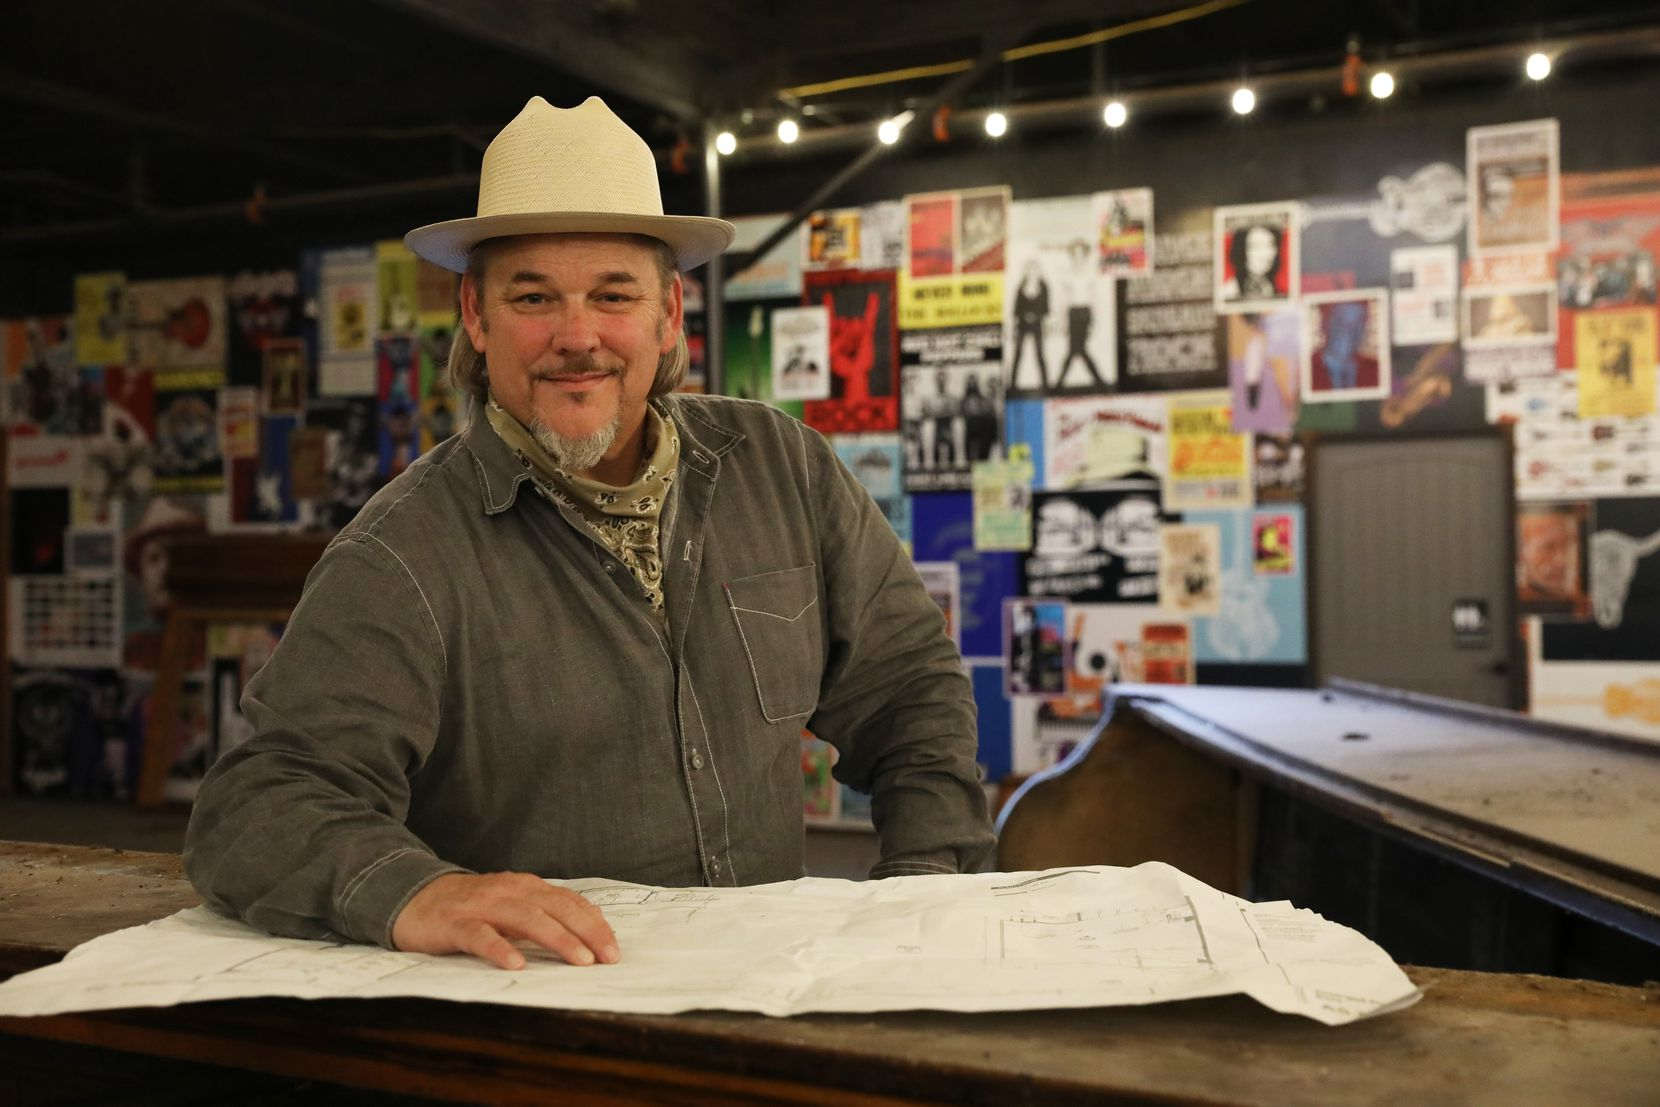 Edwin Cabaniss, owner of the Kessler Theater in Oak Cliff, has a contract to buy the Longhorn Ballroom. Close to a year's worth of restoration and renovations are planned for the legendary Dallas music club on Corinth Street, Cabaniss shared Sept. 25, 2021.